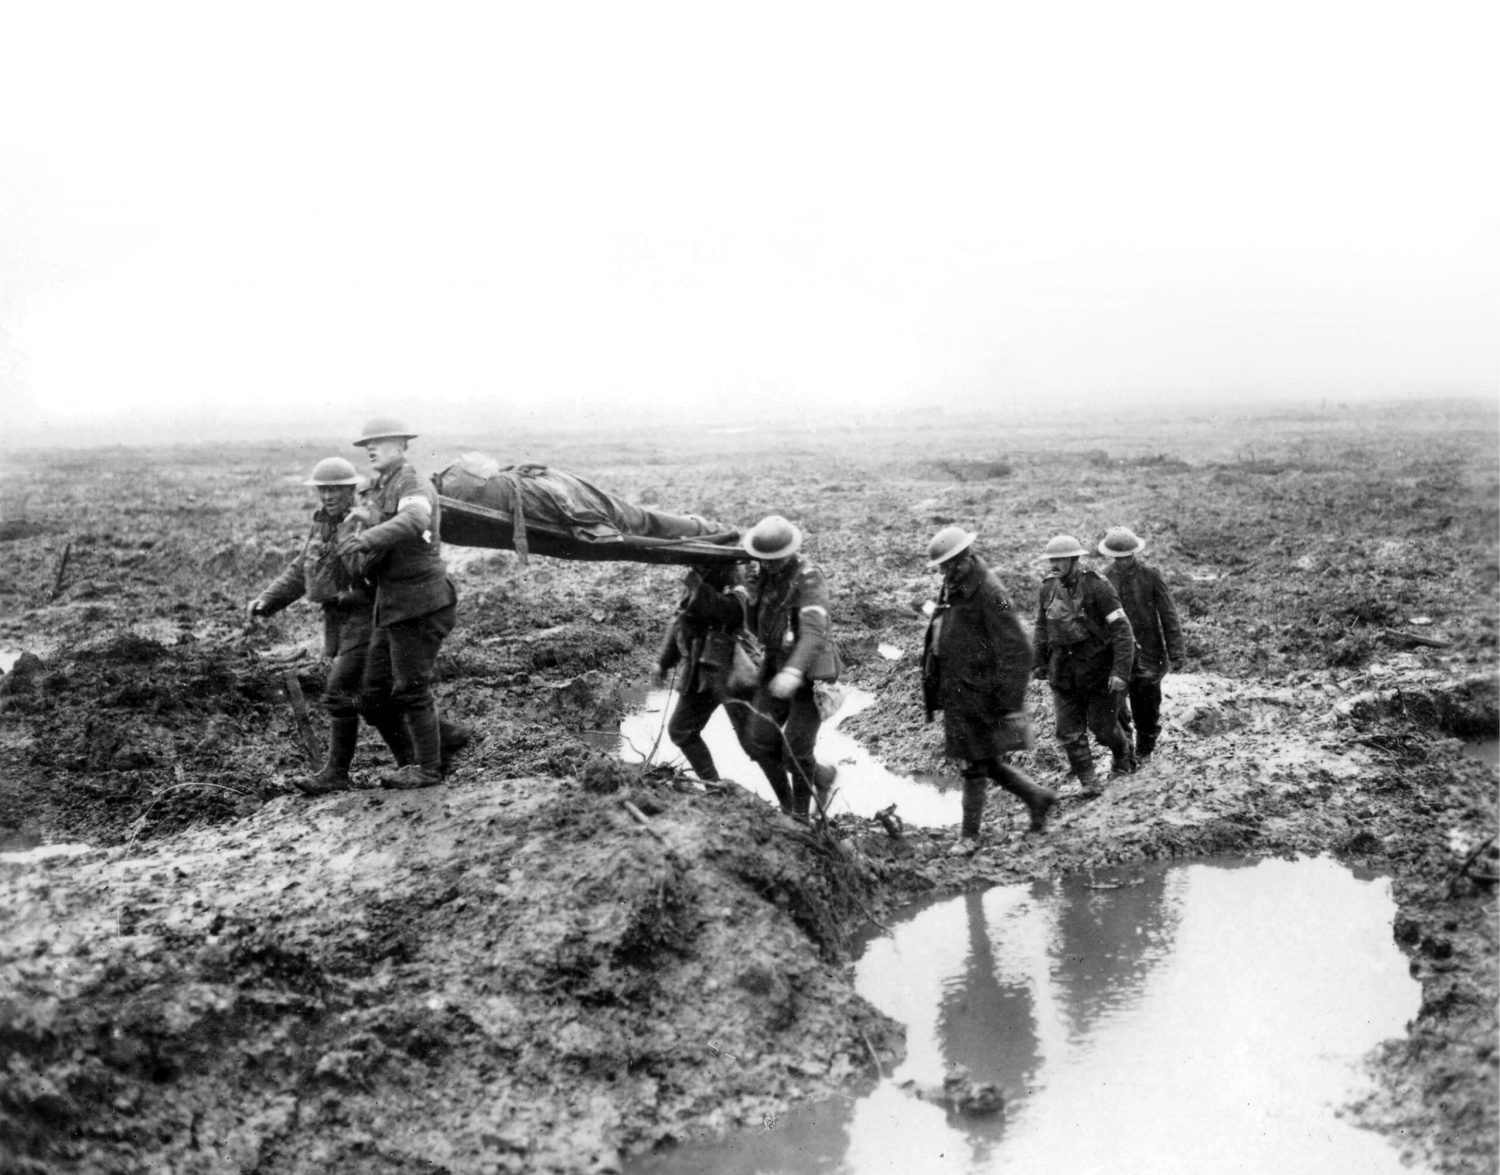 BELOW The First World War coincided with a climatic anomaly that brought increased rain and colder weather, contributing to the conflict's infamously muddy battlefields. Wet conditions were a particular feature of Passchendaele the 3rd Battle of Ypres in